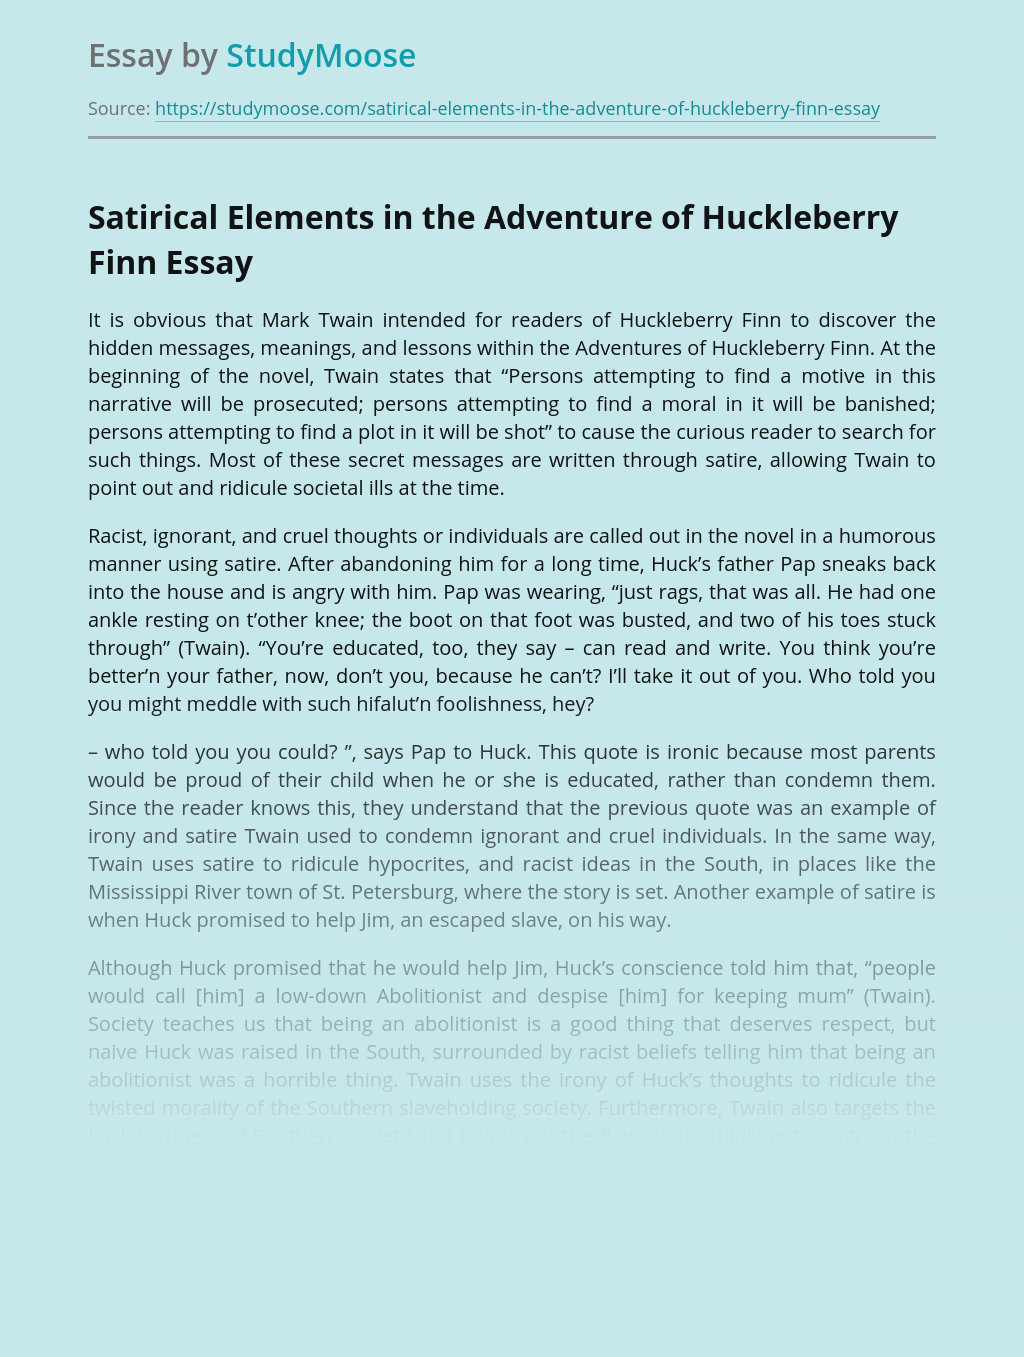 Satirical Elements in the Adventure of Huckleberry Finn